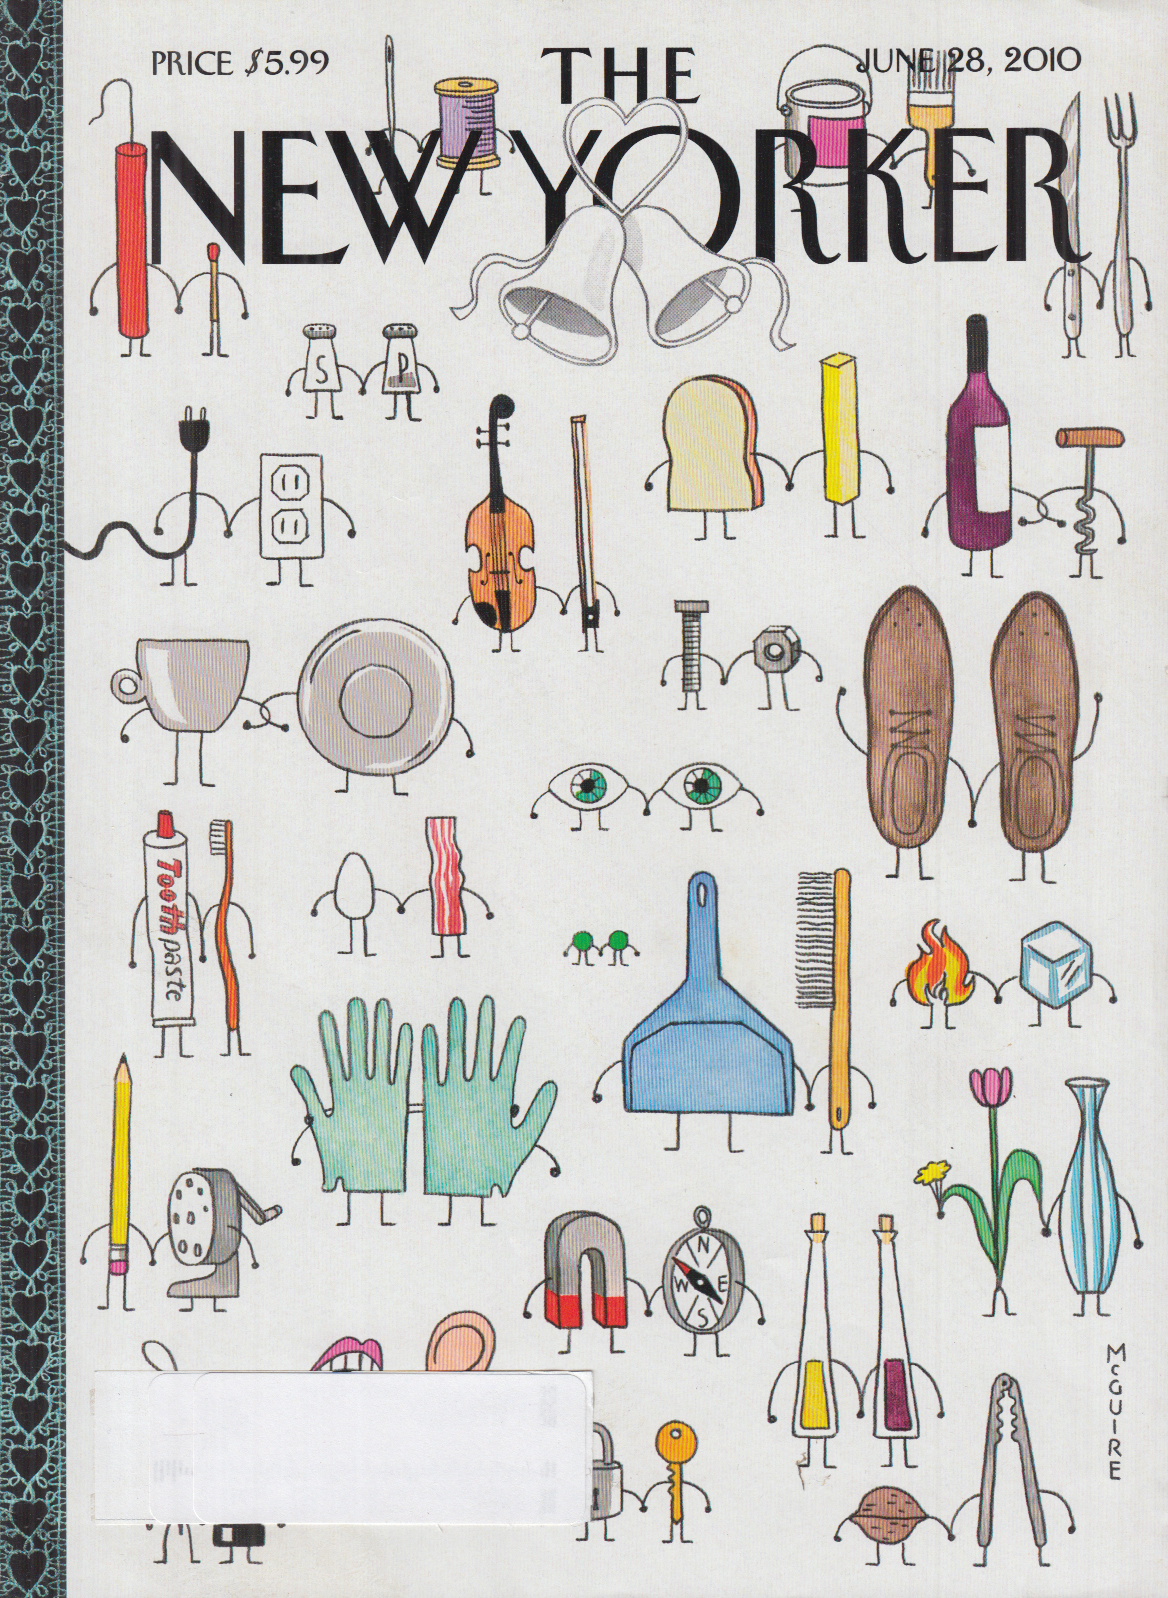 Image for New Yorker cover McGuire 6/28 2010 Things that go together in twos